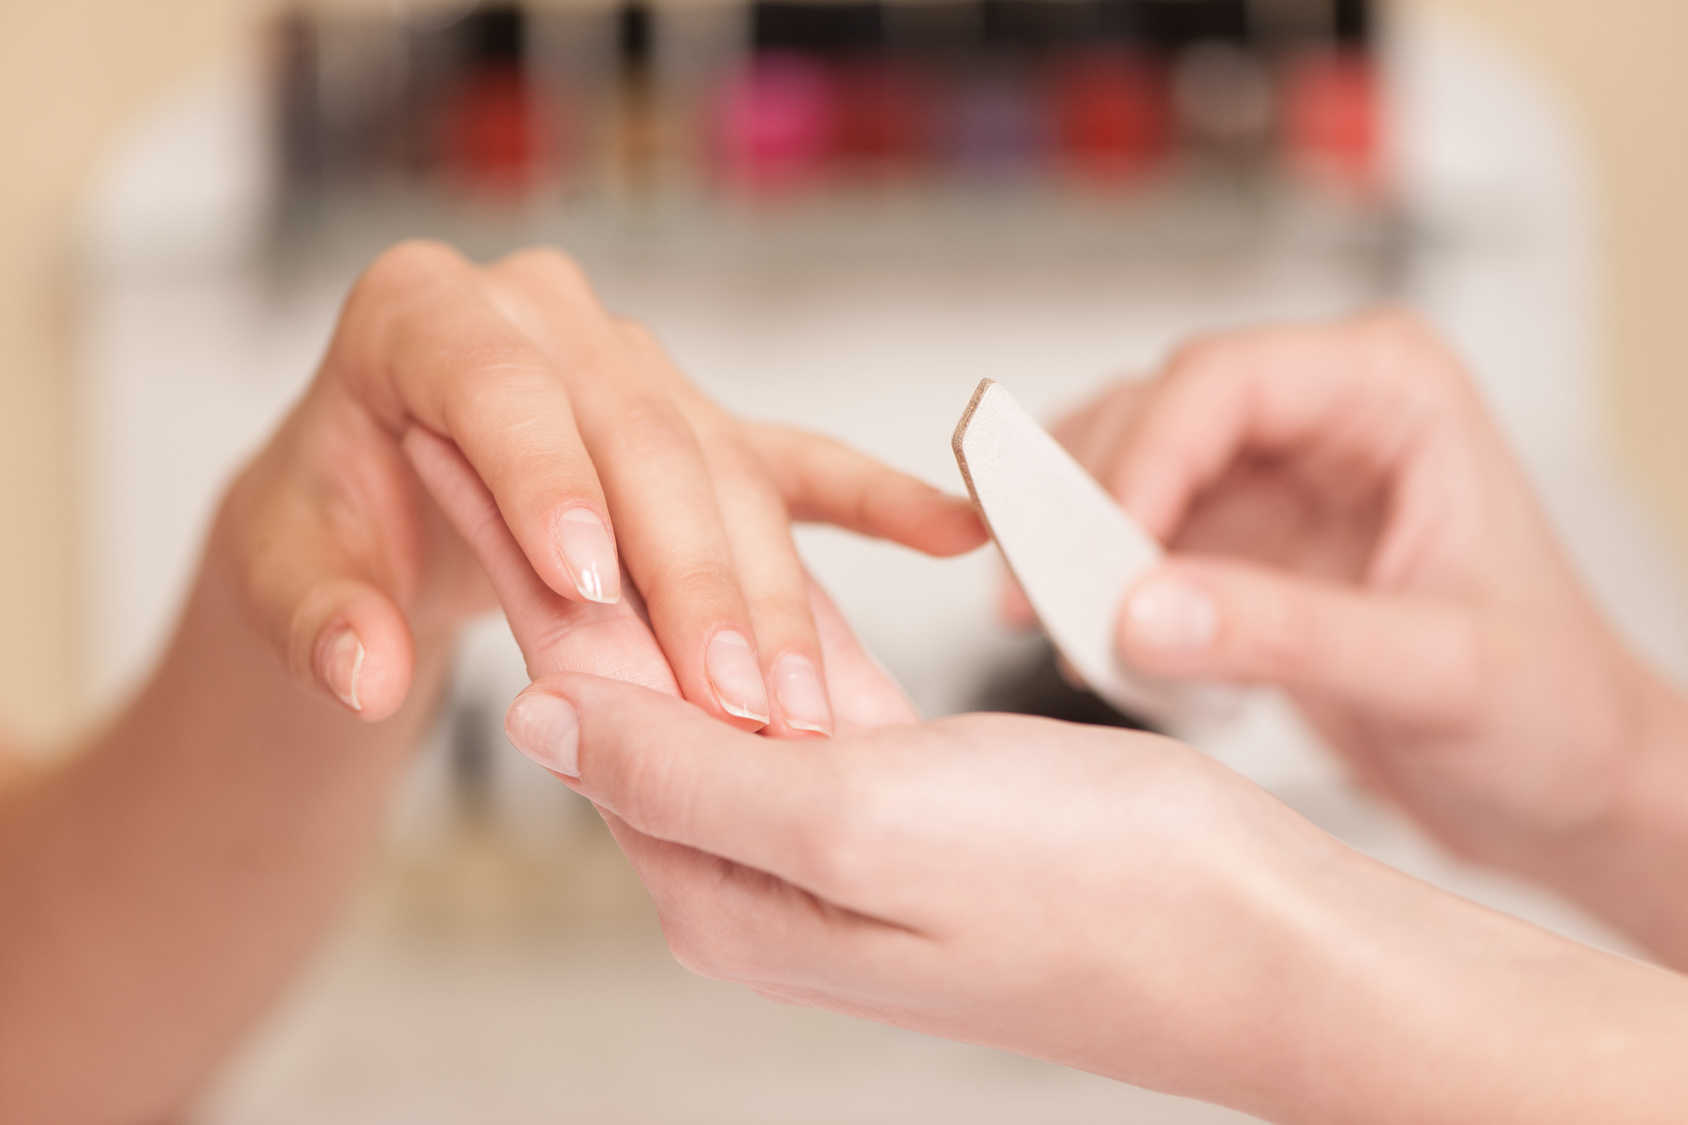 Woman in nail salon receiving manicure.